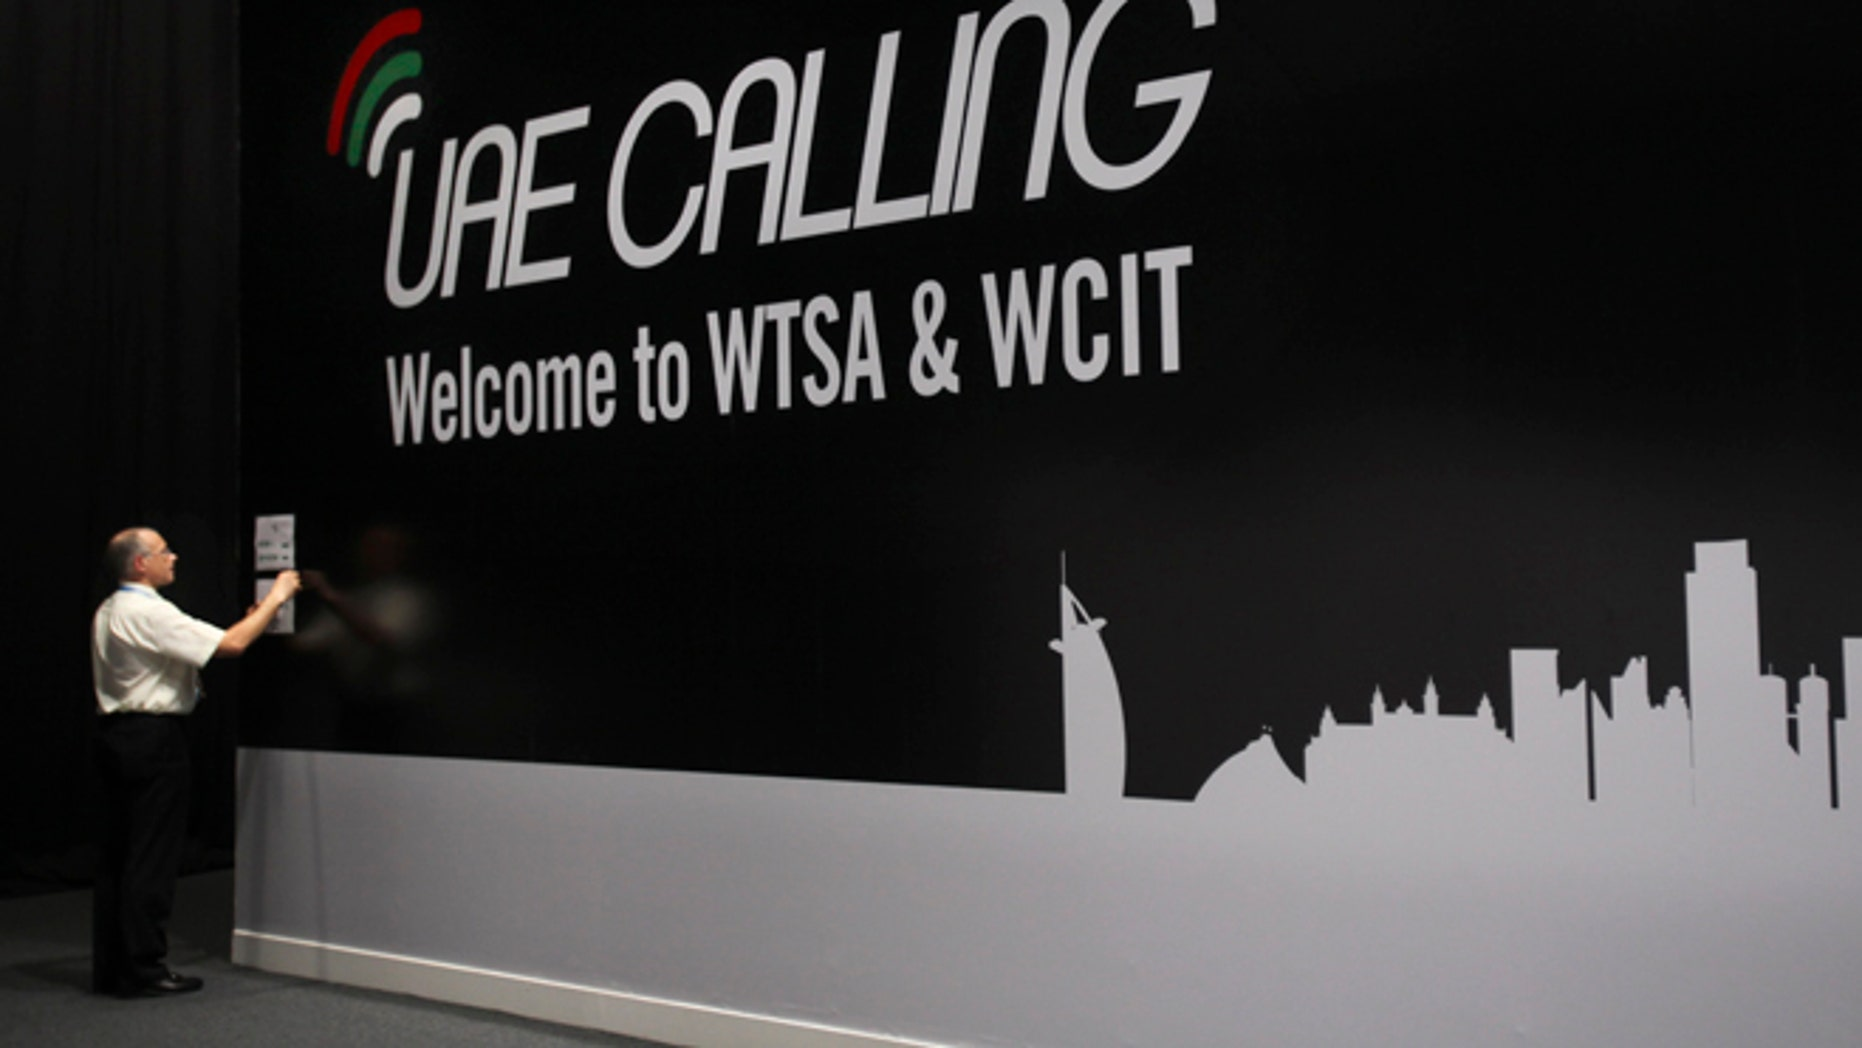 Dec. 3, 2012: An official sticks a note on the wall next to the conference banner during the eleventh day of the World Conference on International Telecommunication in Dubai, United Arab Emirates.